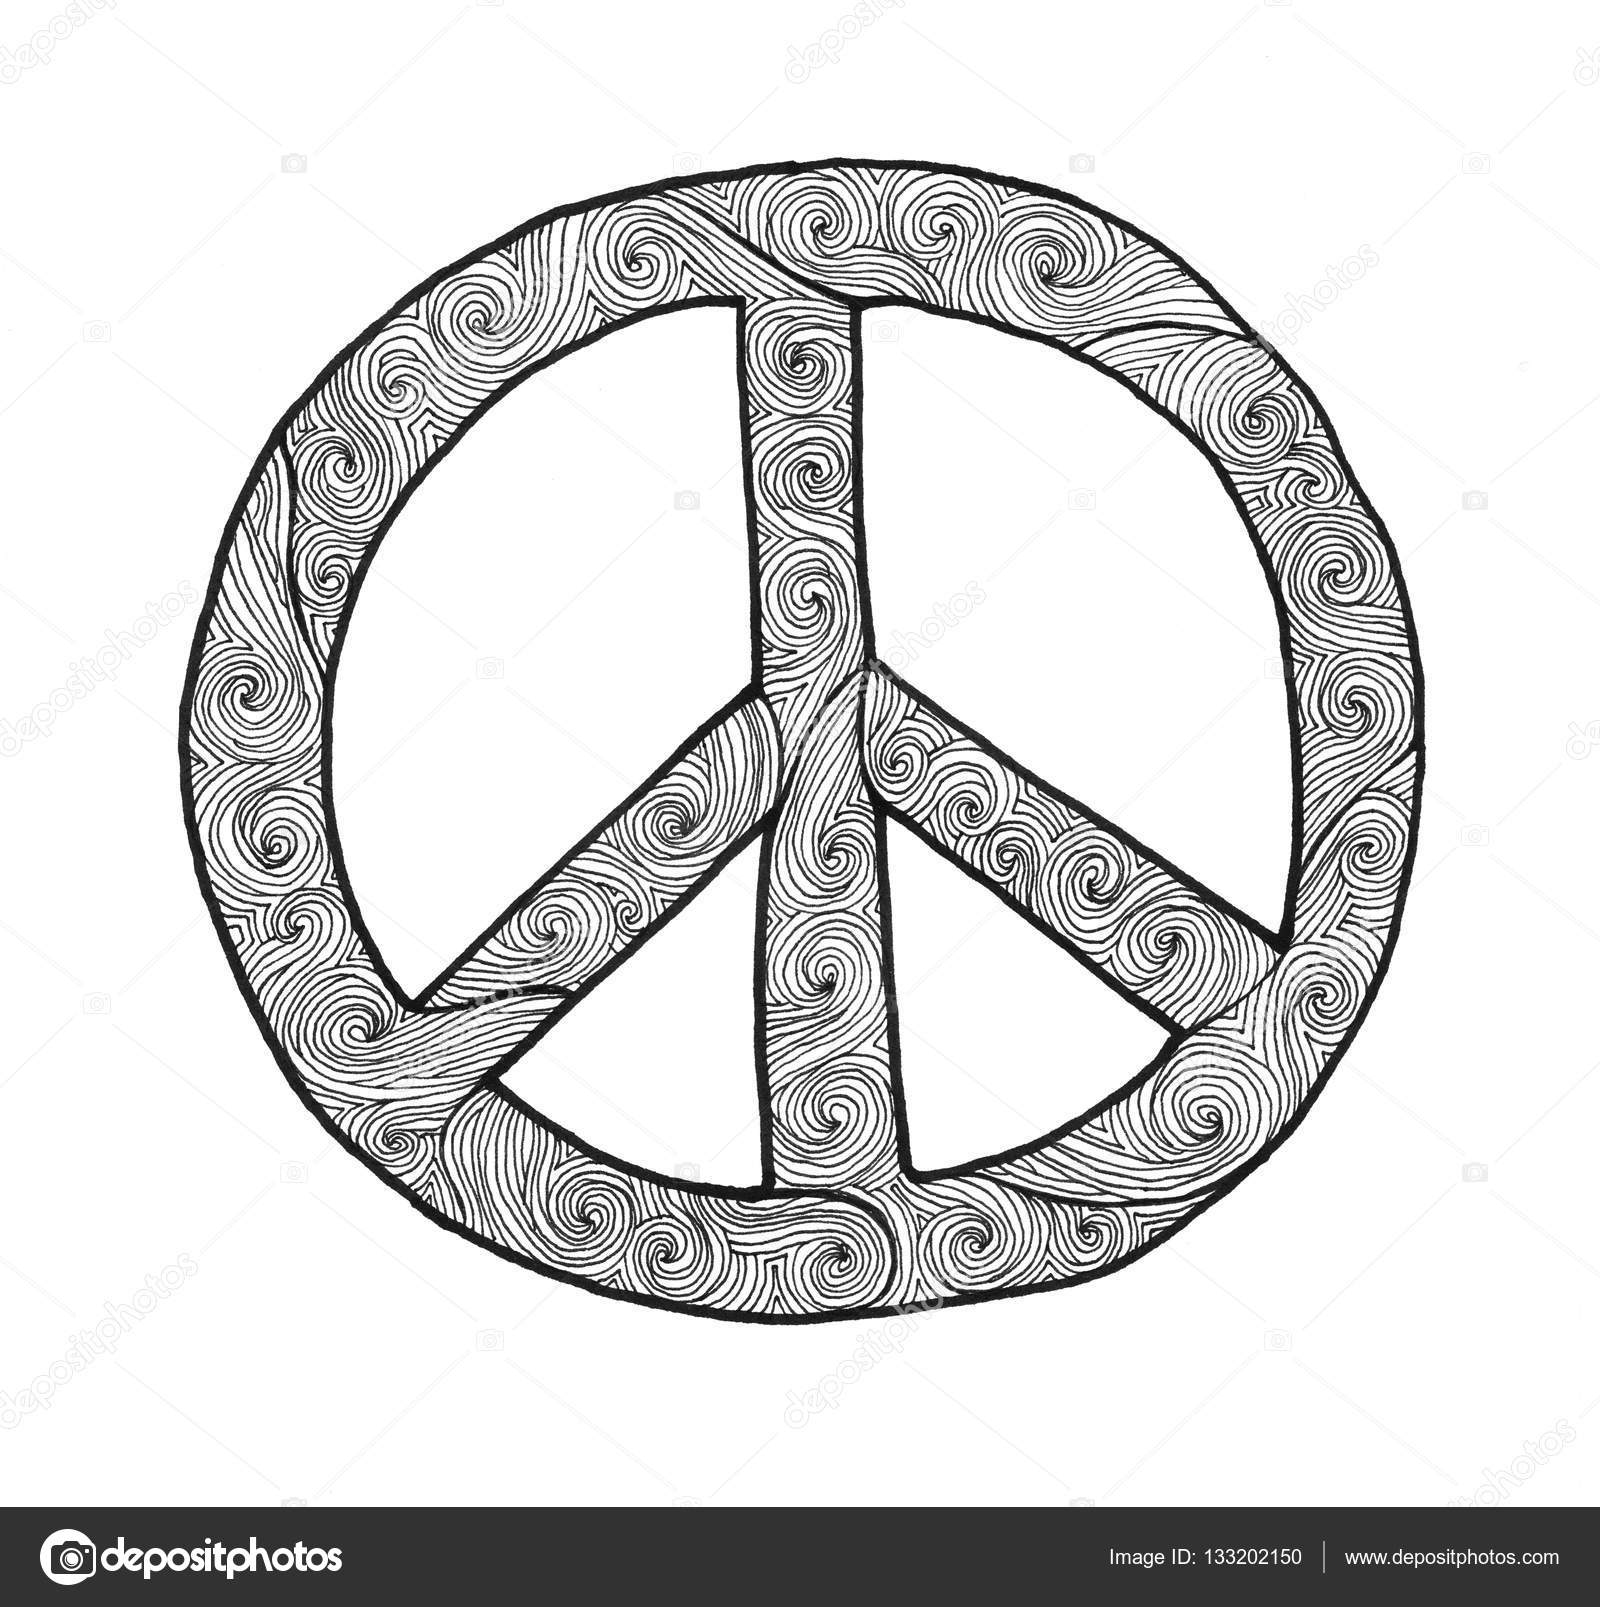 Peace Sign Drawing at GetDrawings com | Free for personal